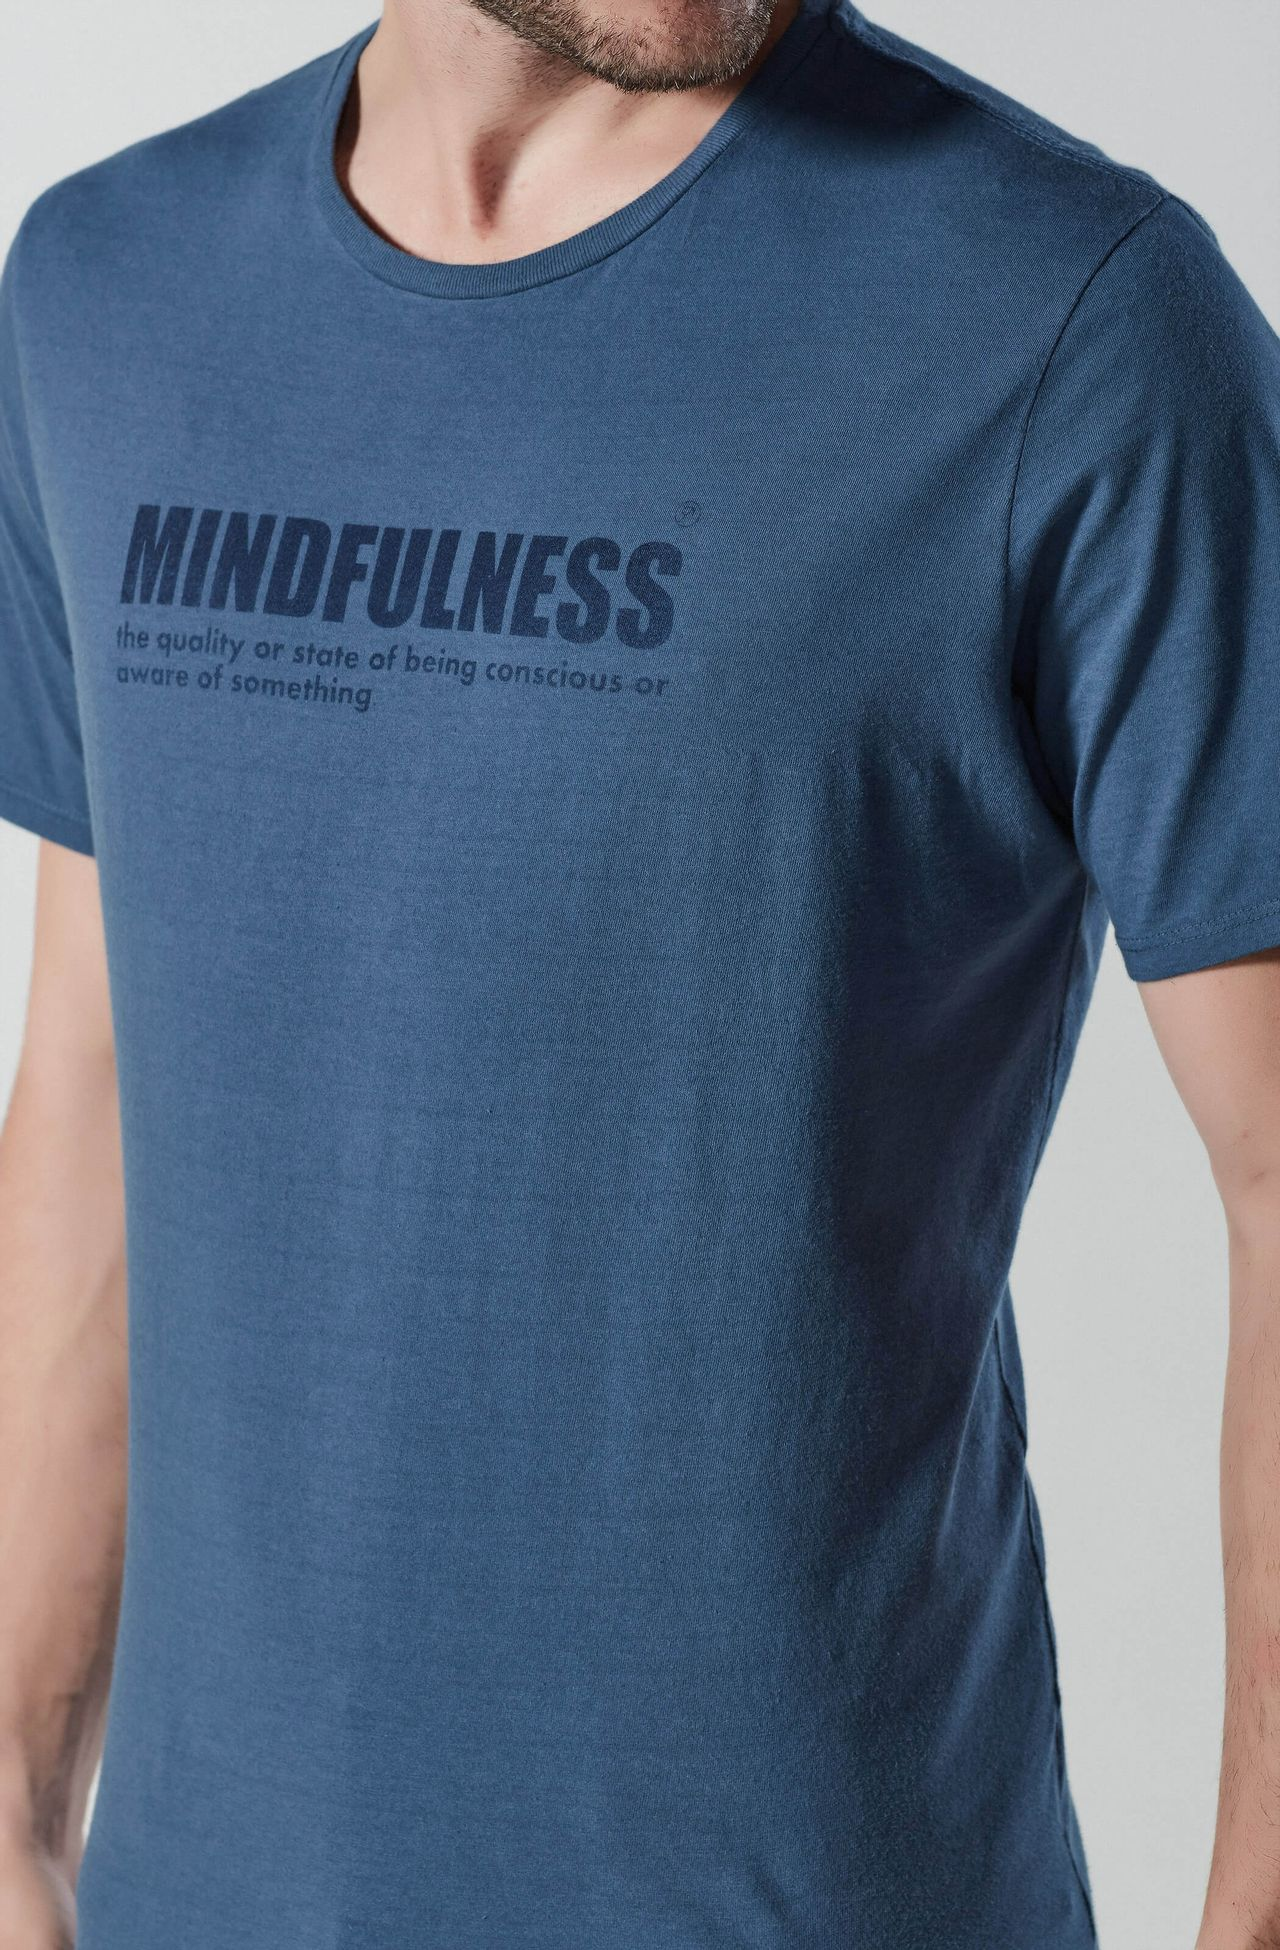 8353CCZ00022_590_3-TSHIRT-MC-MINDFULNESS